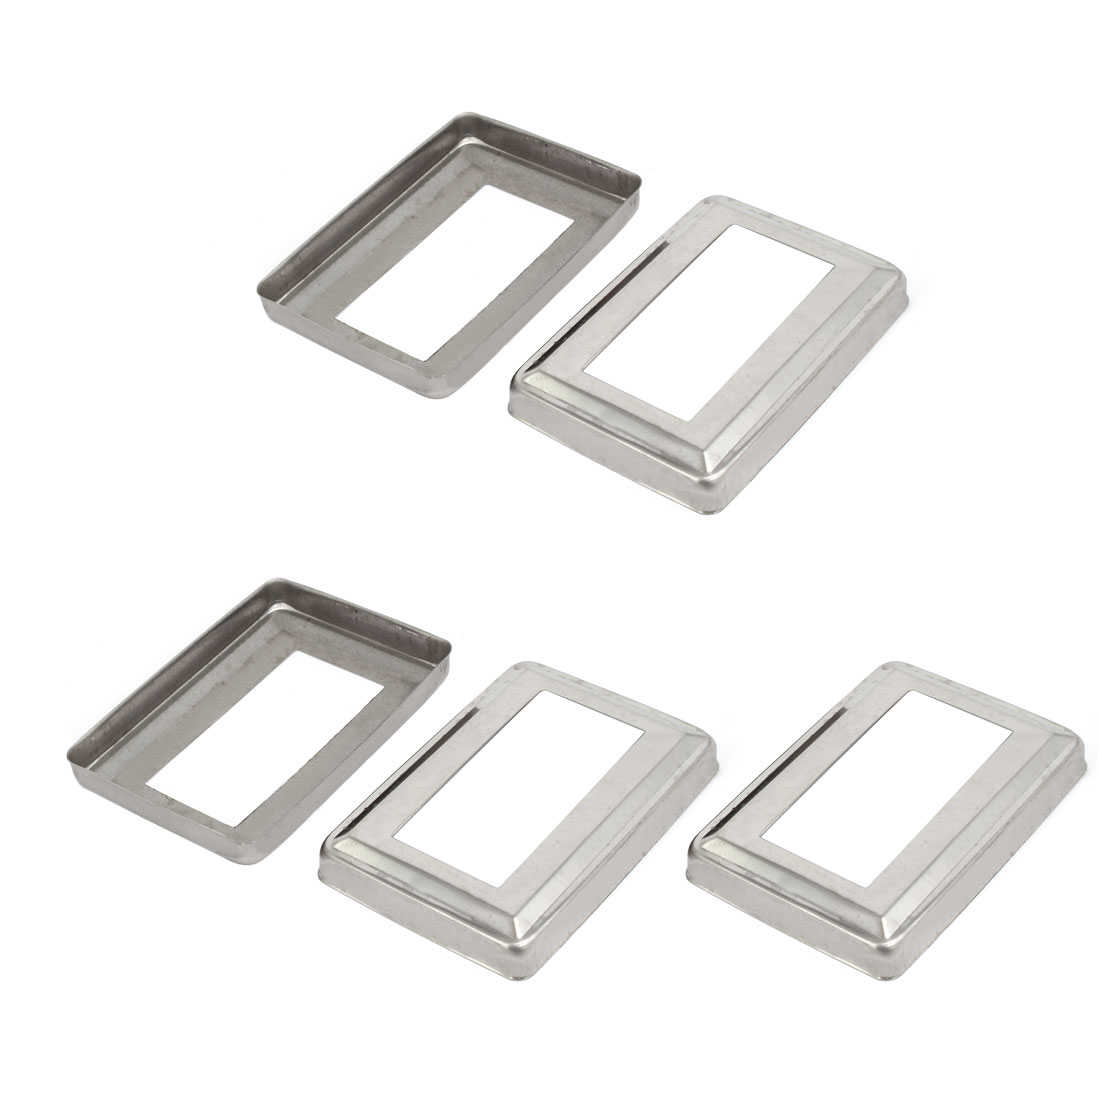 5pcs Ladder Handrail Hand Rail 95mm x 45mm Post Plate Cover 201 Stainless Steel